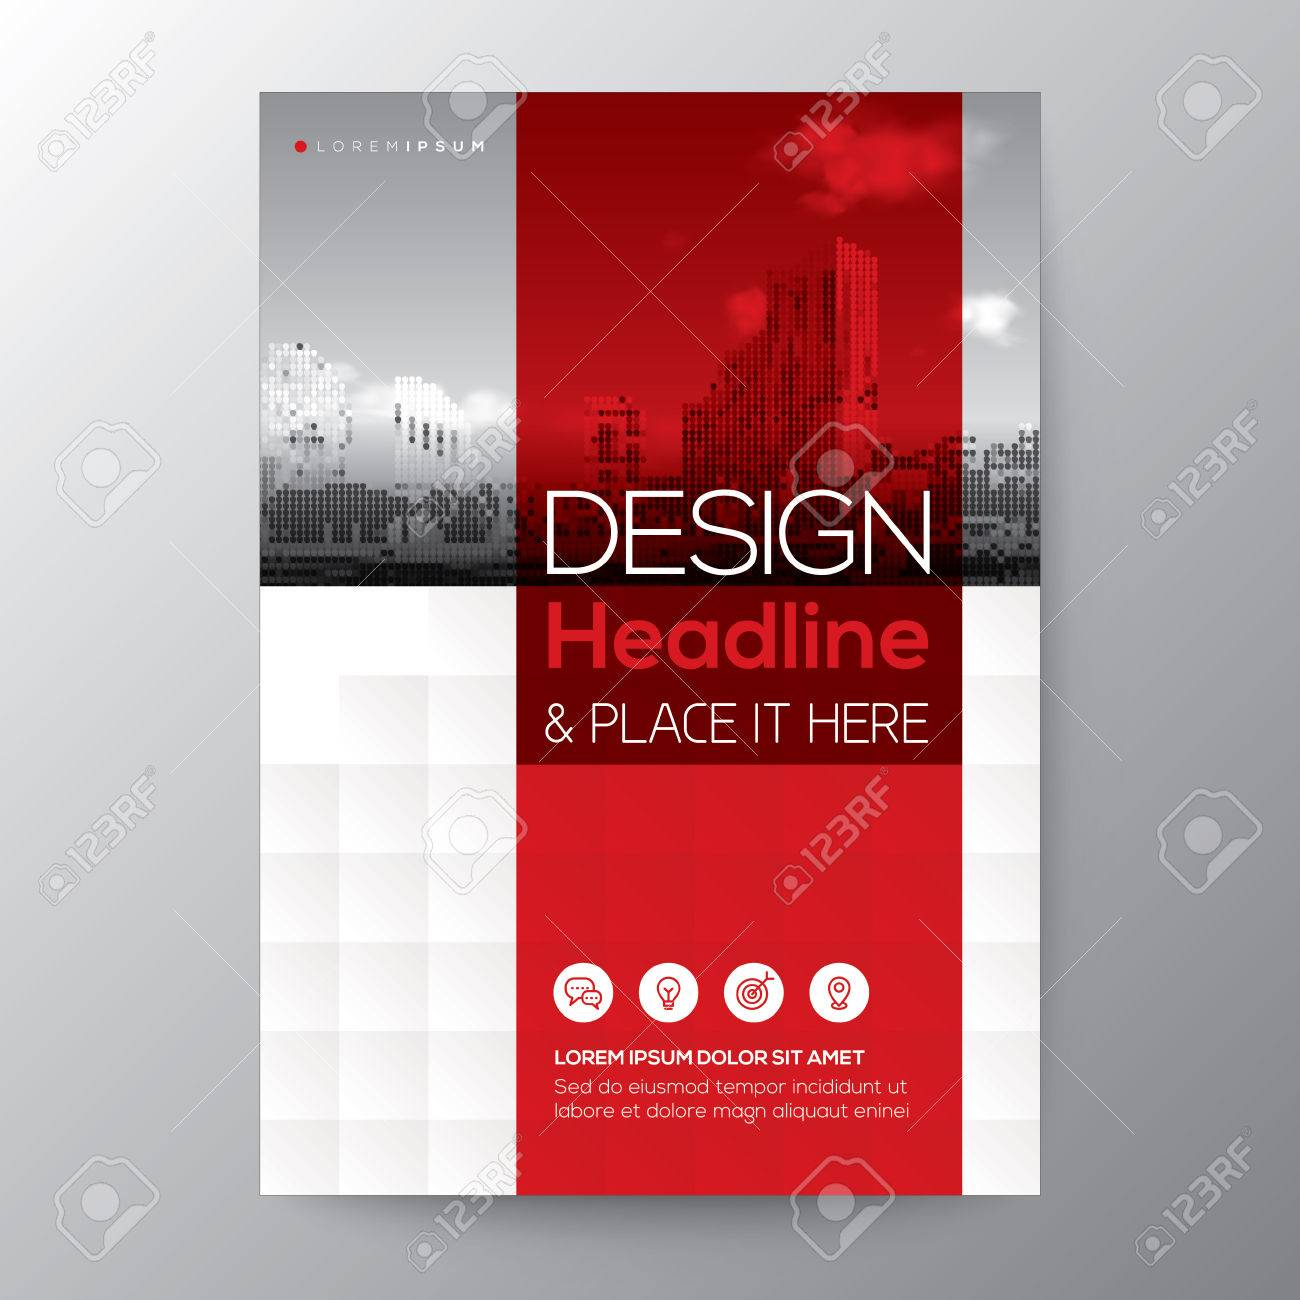 Red stripe graphic background for Brochure annual report cover Flyer Poster design Layout vector template in A4 size - 76568921